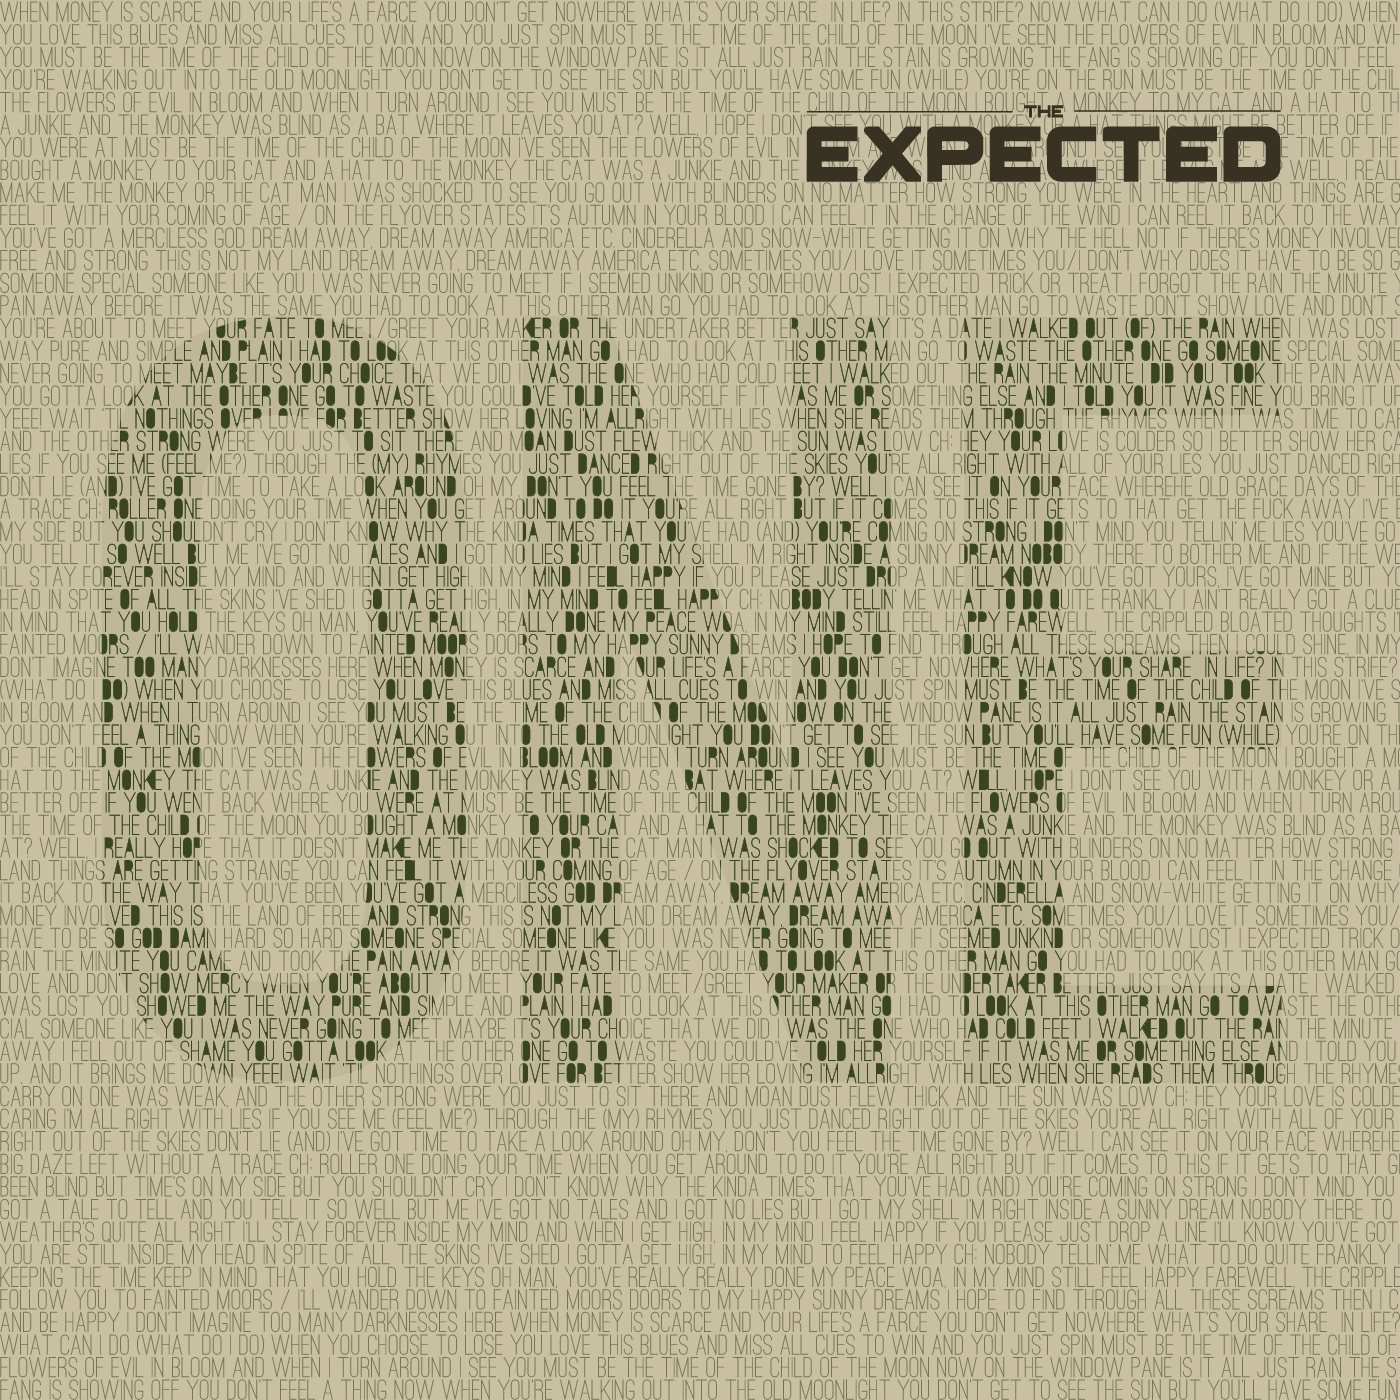 The Expected - one album cover